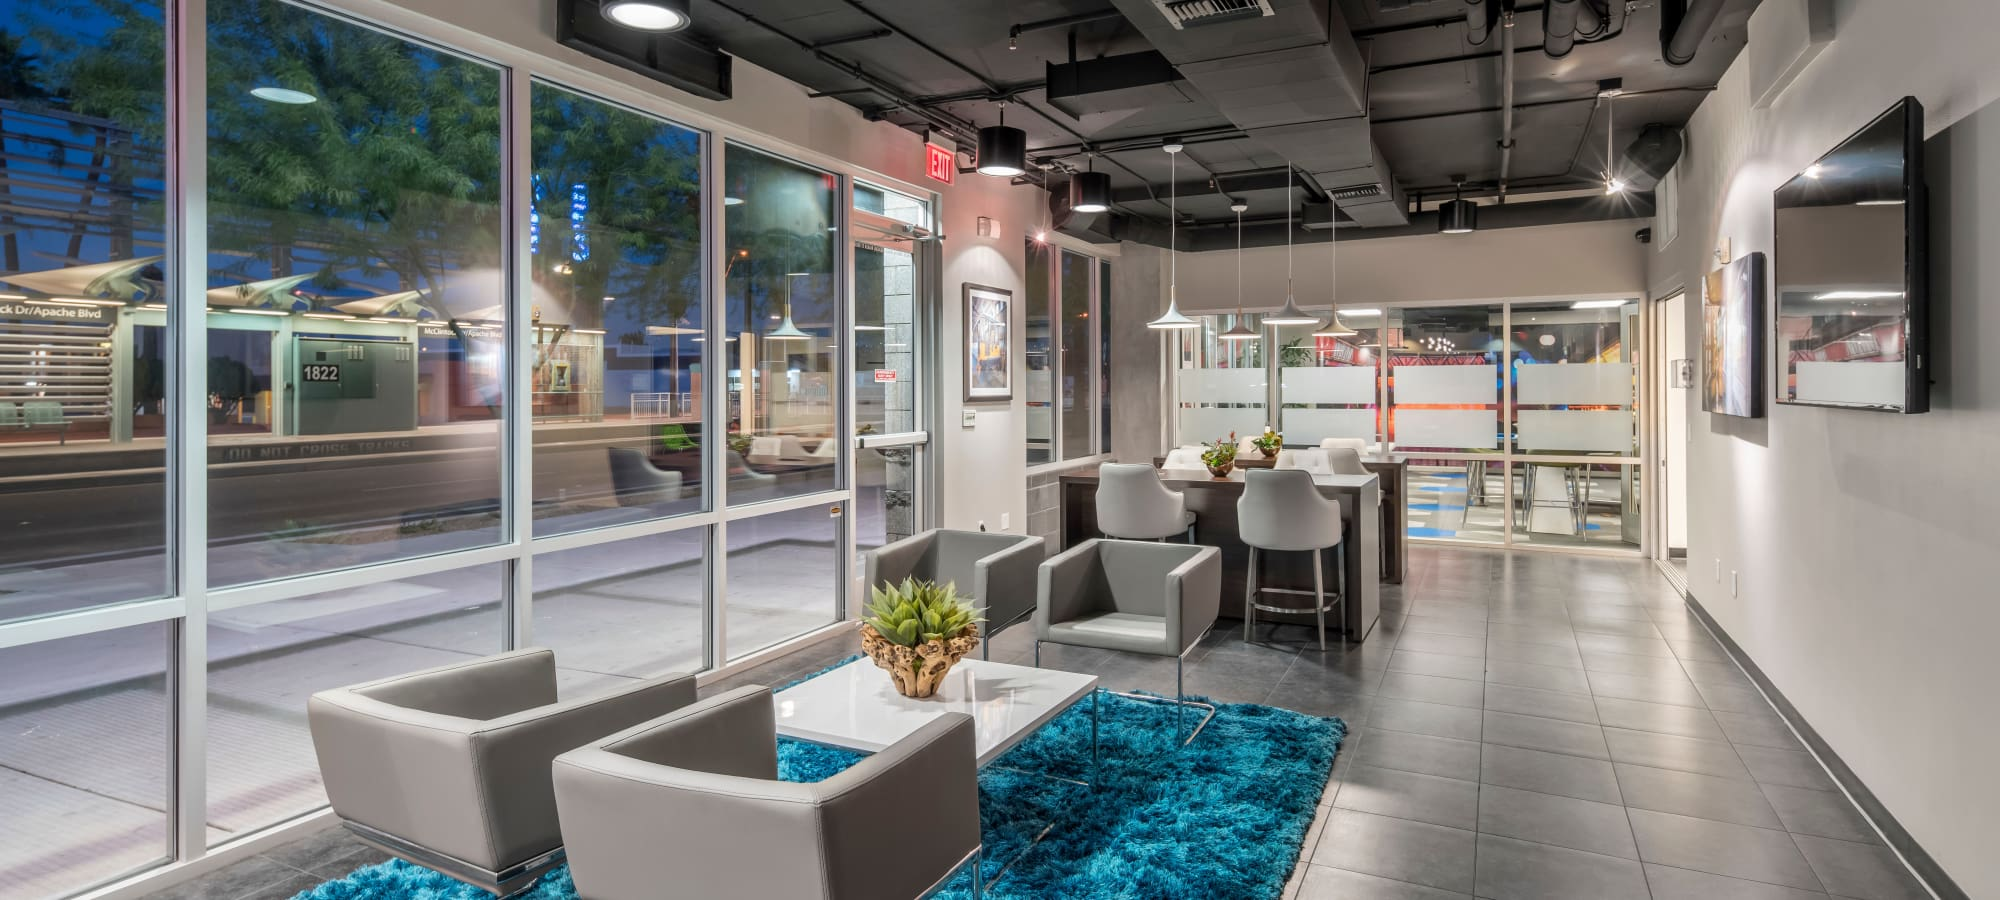 Community clubhouse with comfortable lounge seating at Tempe Metro in Tempe, Arizona